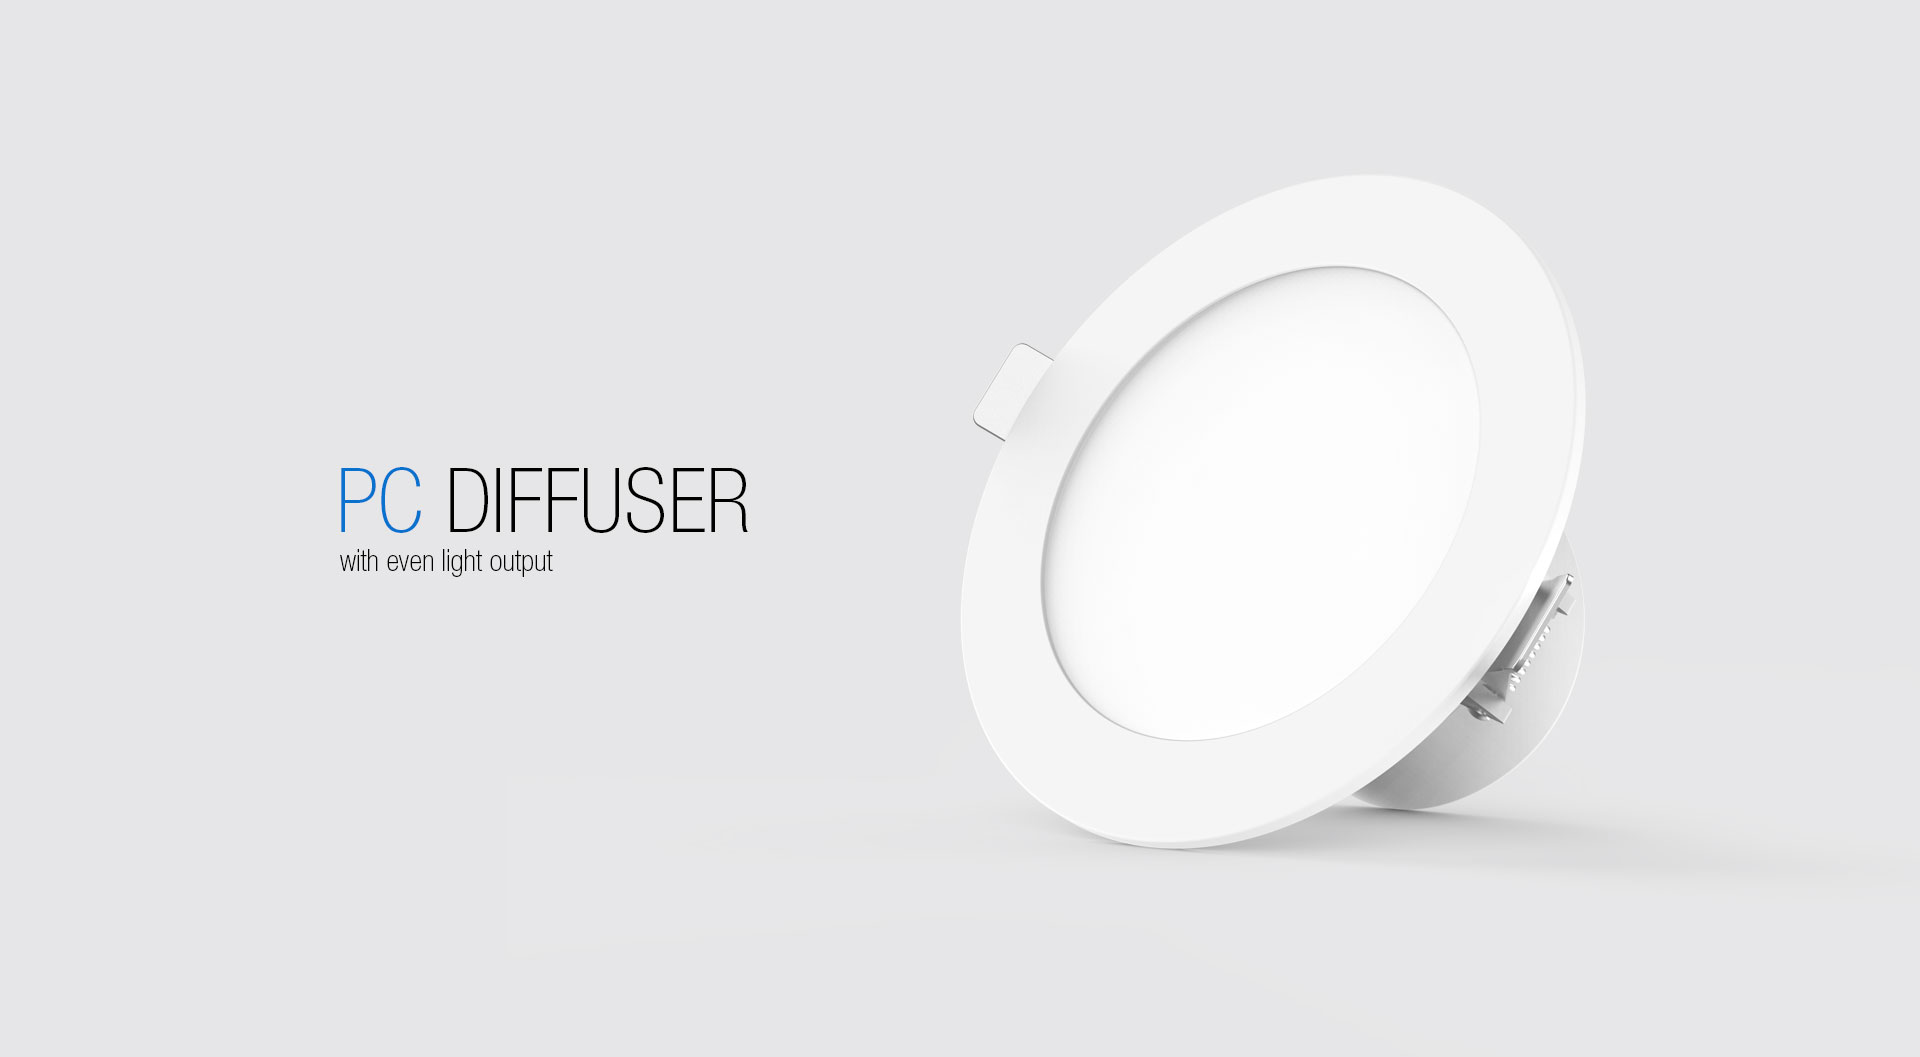 PC Diffuser 7 Watts LED Downlights_02